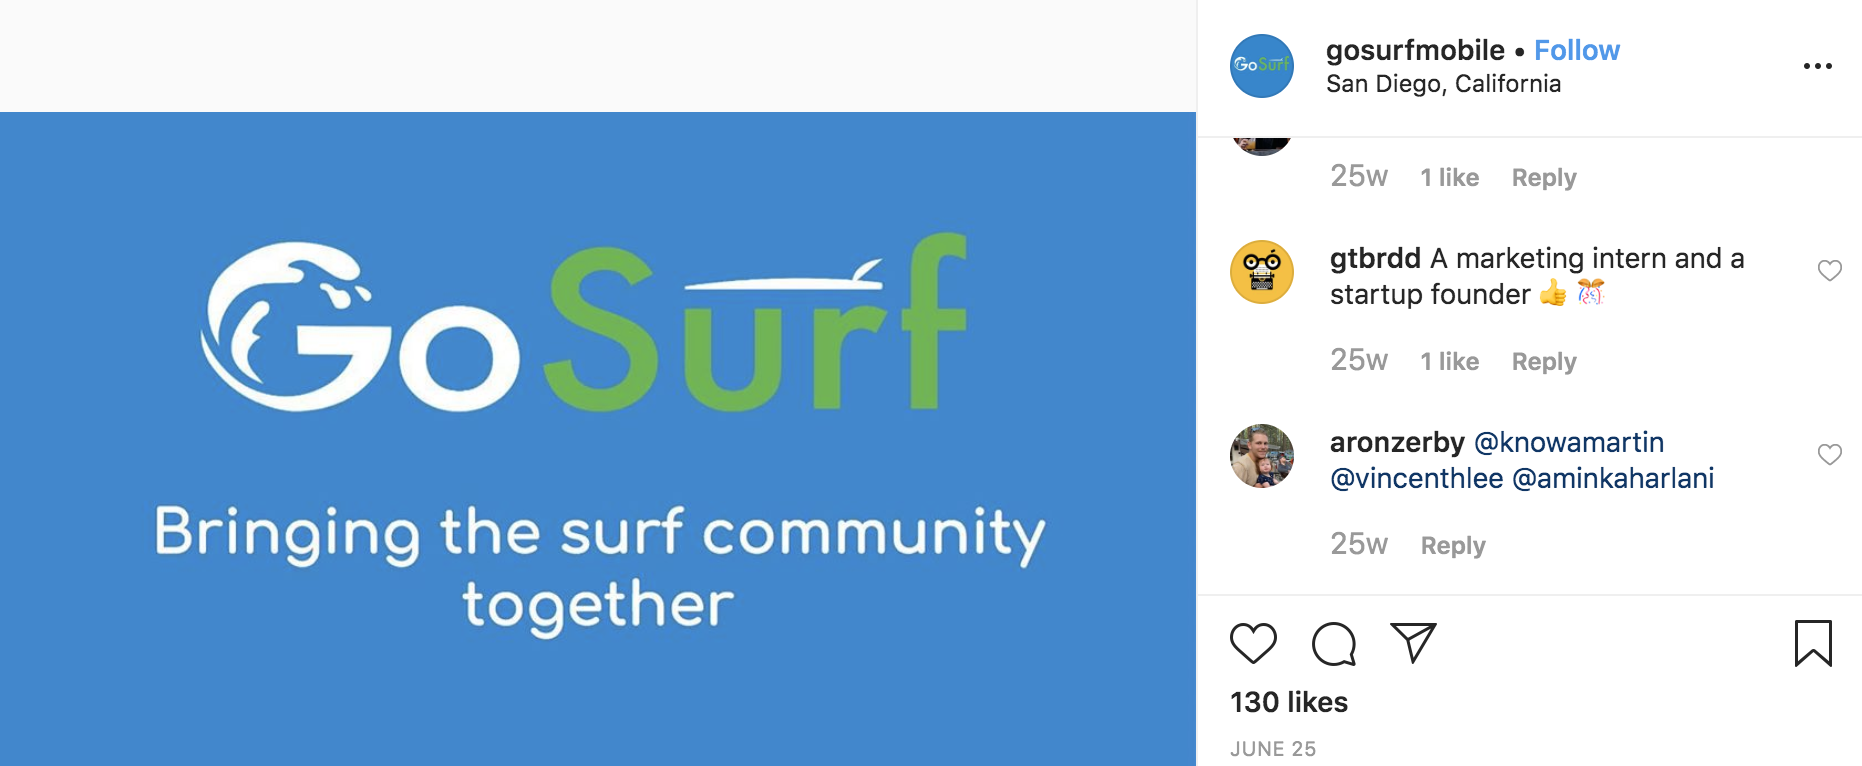 """Instagram post from GoSurf Mobile that shows their green and blue logo and reads """"Bringing the surf community together."""""""